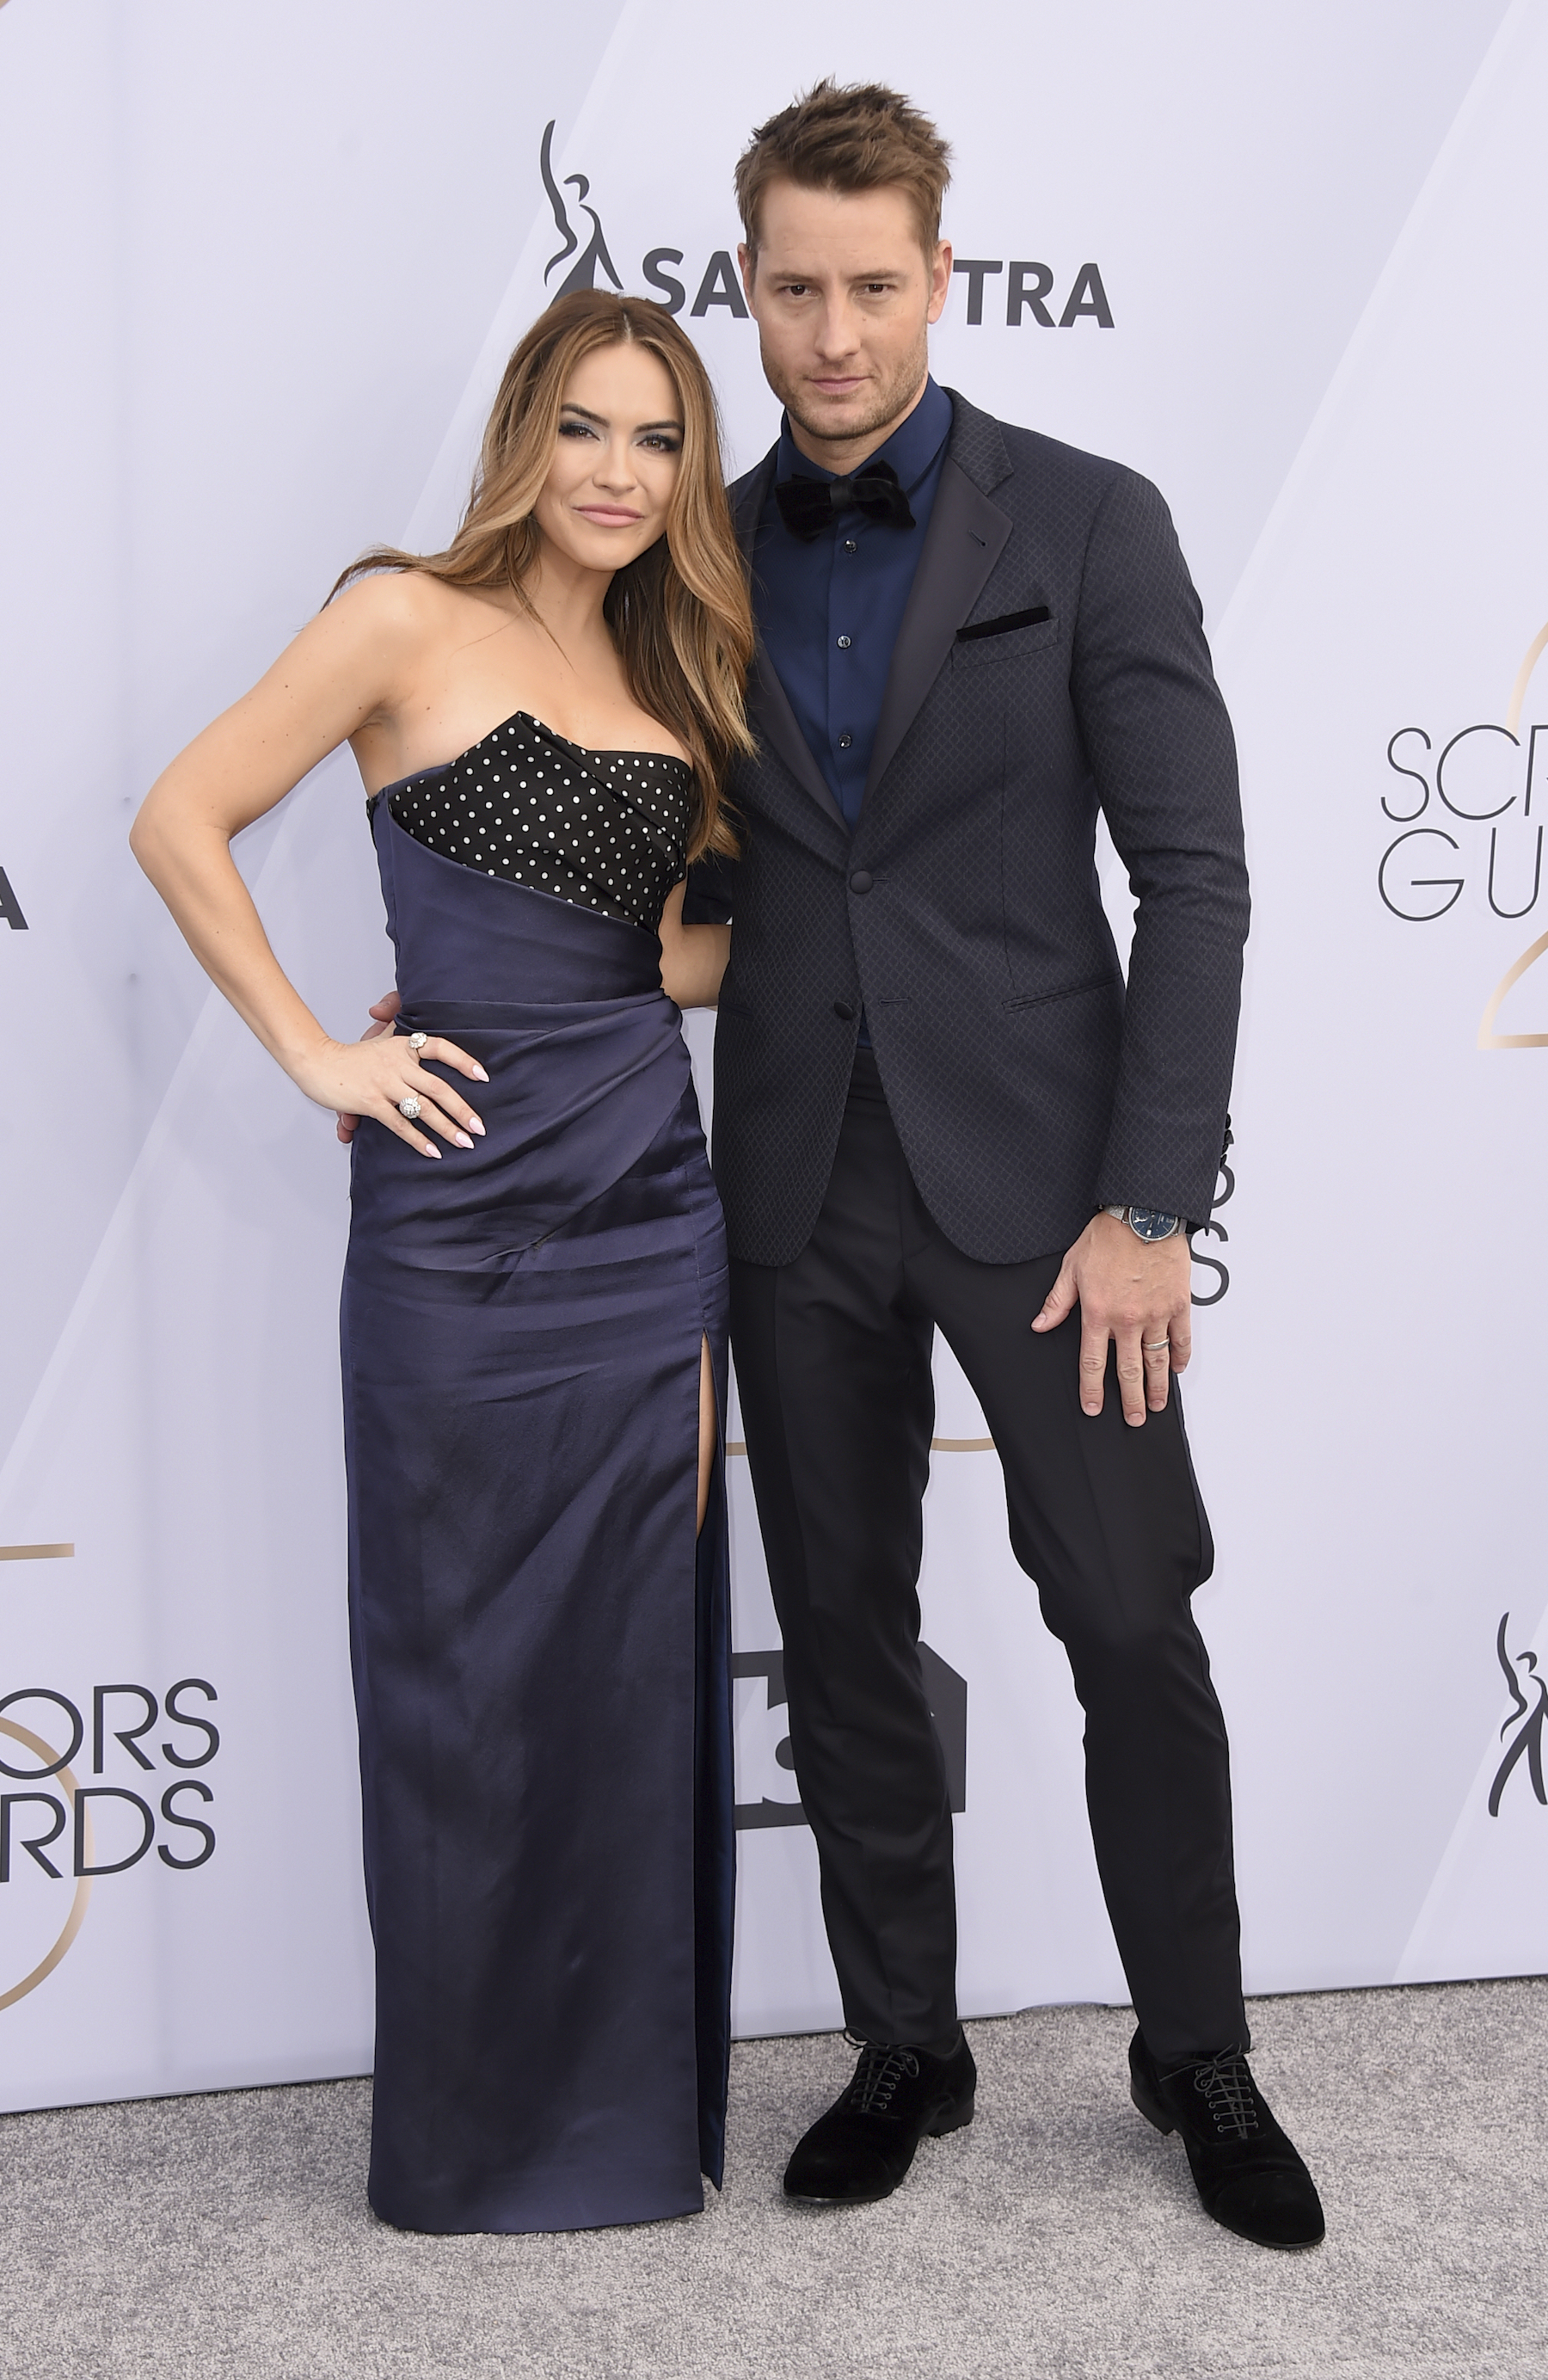 "<div class=""meta image-caption""><div class=""origin-logo origin-image ap""><span>AP</span></div><span class=""caption-text"">Chrishell Stause, left, and Justin Hartley arrive at the 25th annual Screen Actors Guild Awards at the Shrine Auditorium & Expo Hall on Sunday, Jan. 27, 2019, in Los Angeles. (Jordan Strauss/Invision/AP)</span></div>"